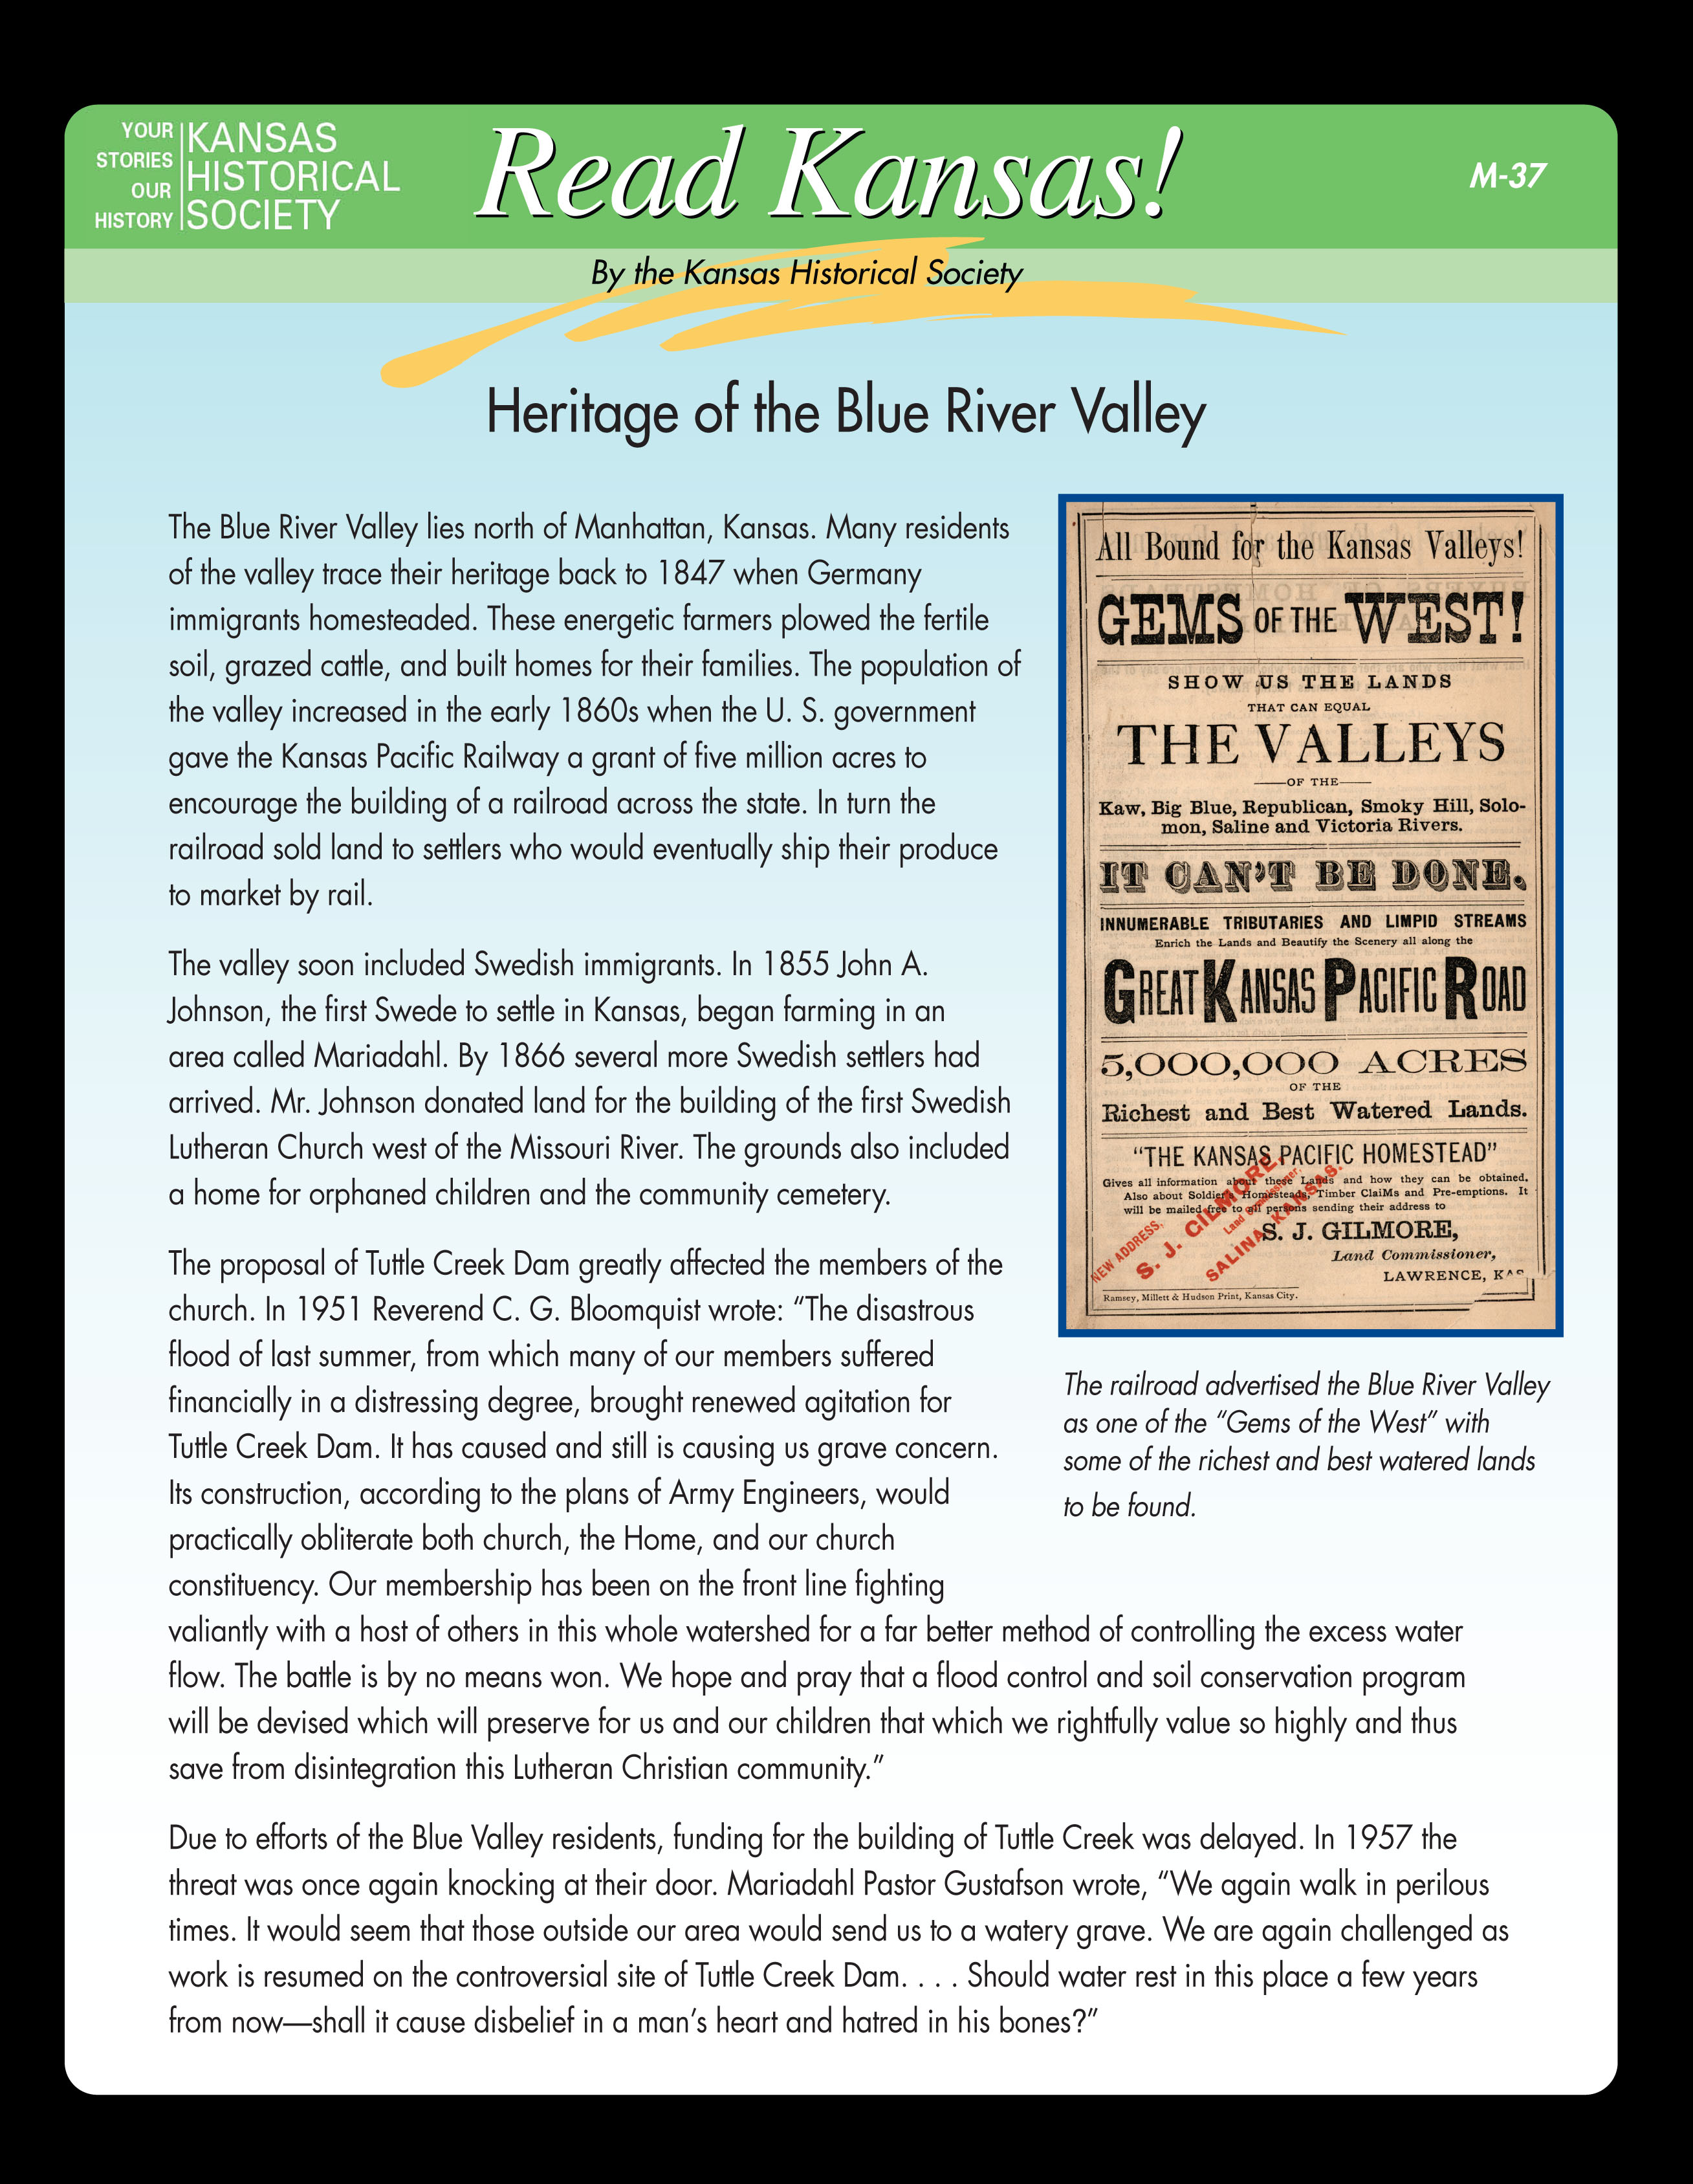 Heritage of the Blue River Valley